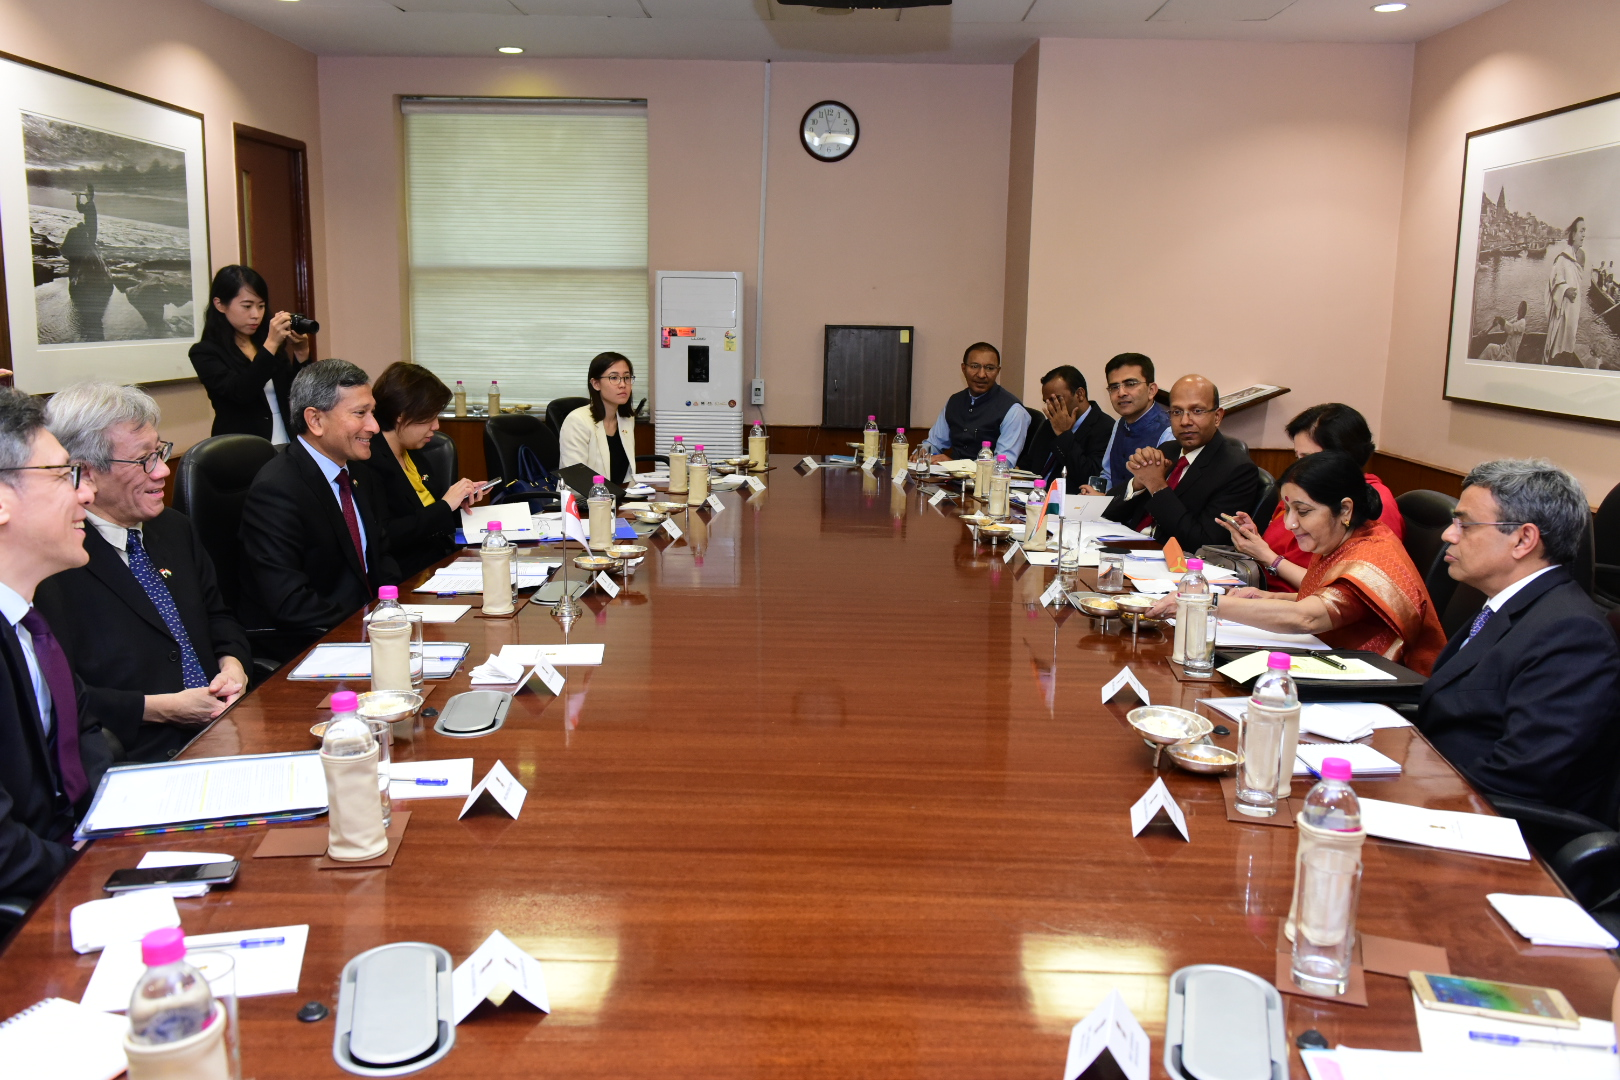 Delegations led by Singapore's Minister for Foreign Affairs Dr Vivian Balakrishnan ndian External Affairs Minister(EAM) Sushma Swaraj attend 5th Joint Ministerial Committee Meeting.